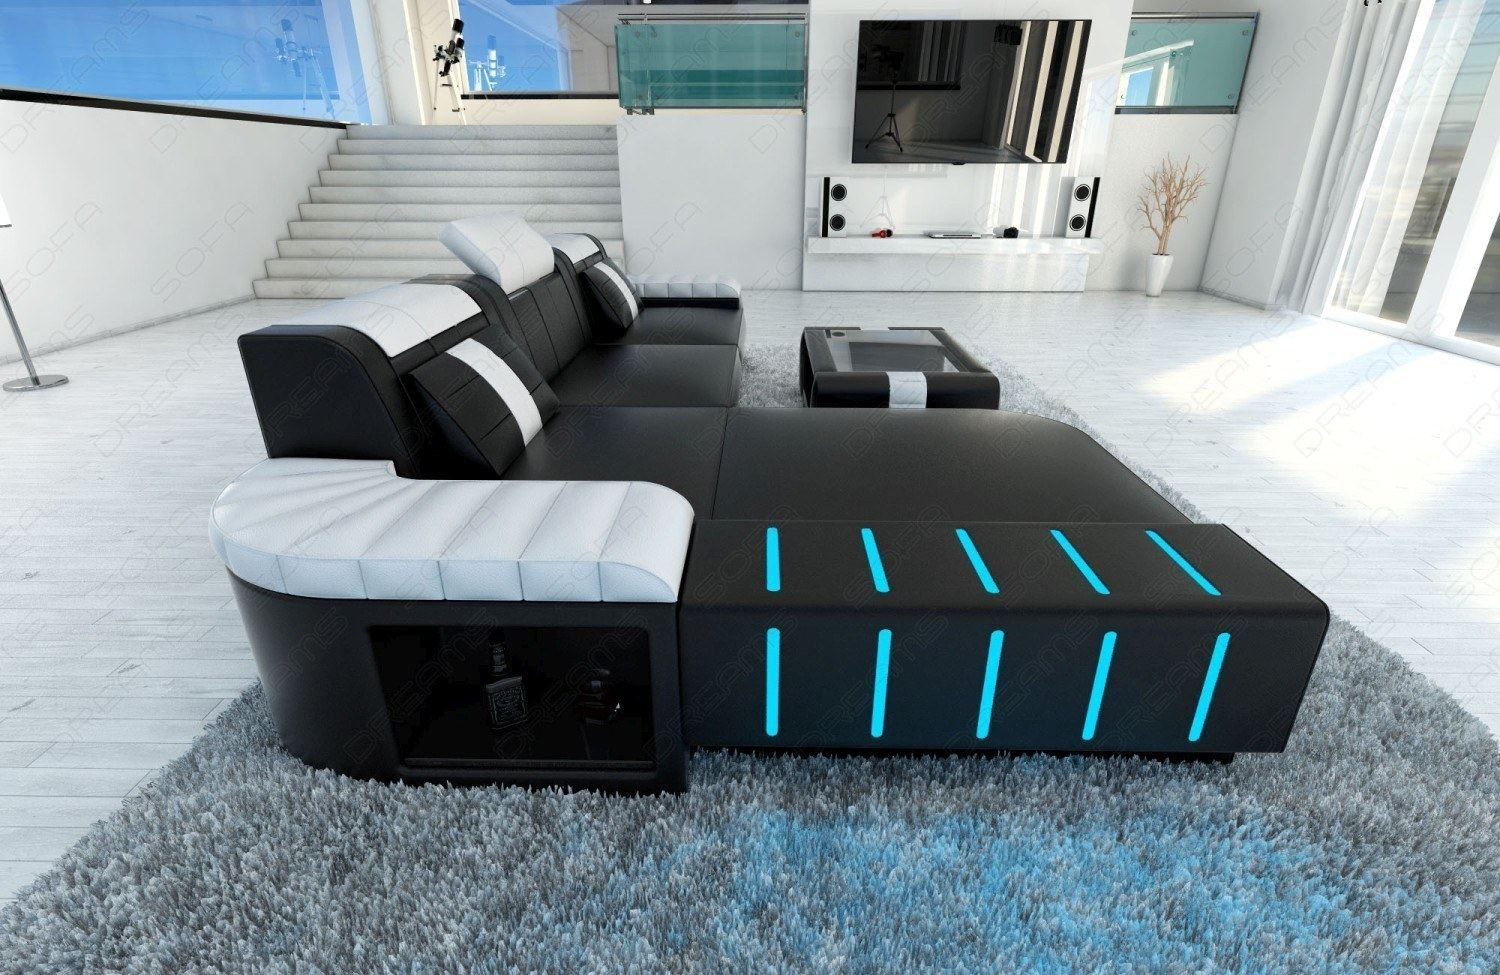 details about modern sofa bellagio led l shaped black white. Black Bedroom Furniture Sets. Home Design Ideas